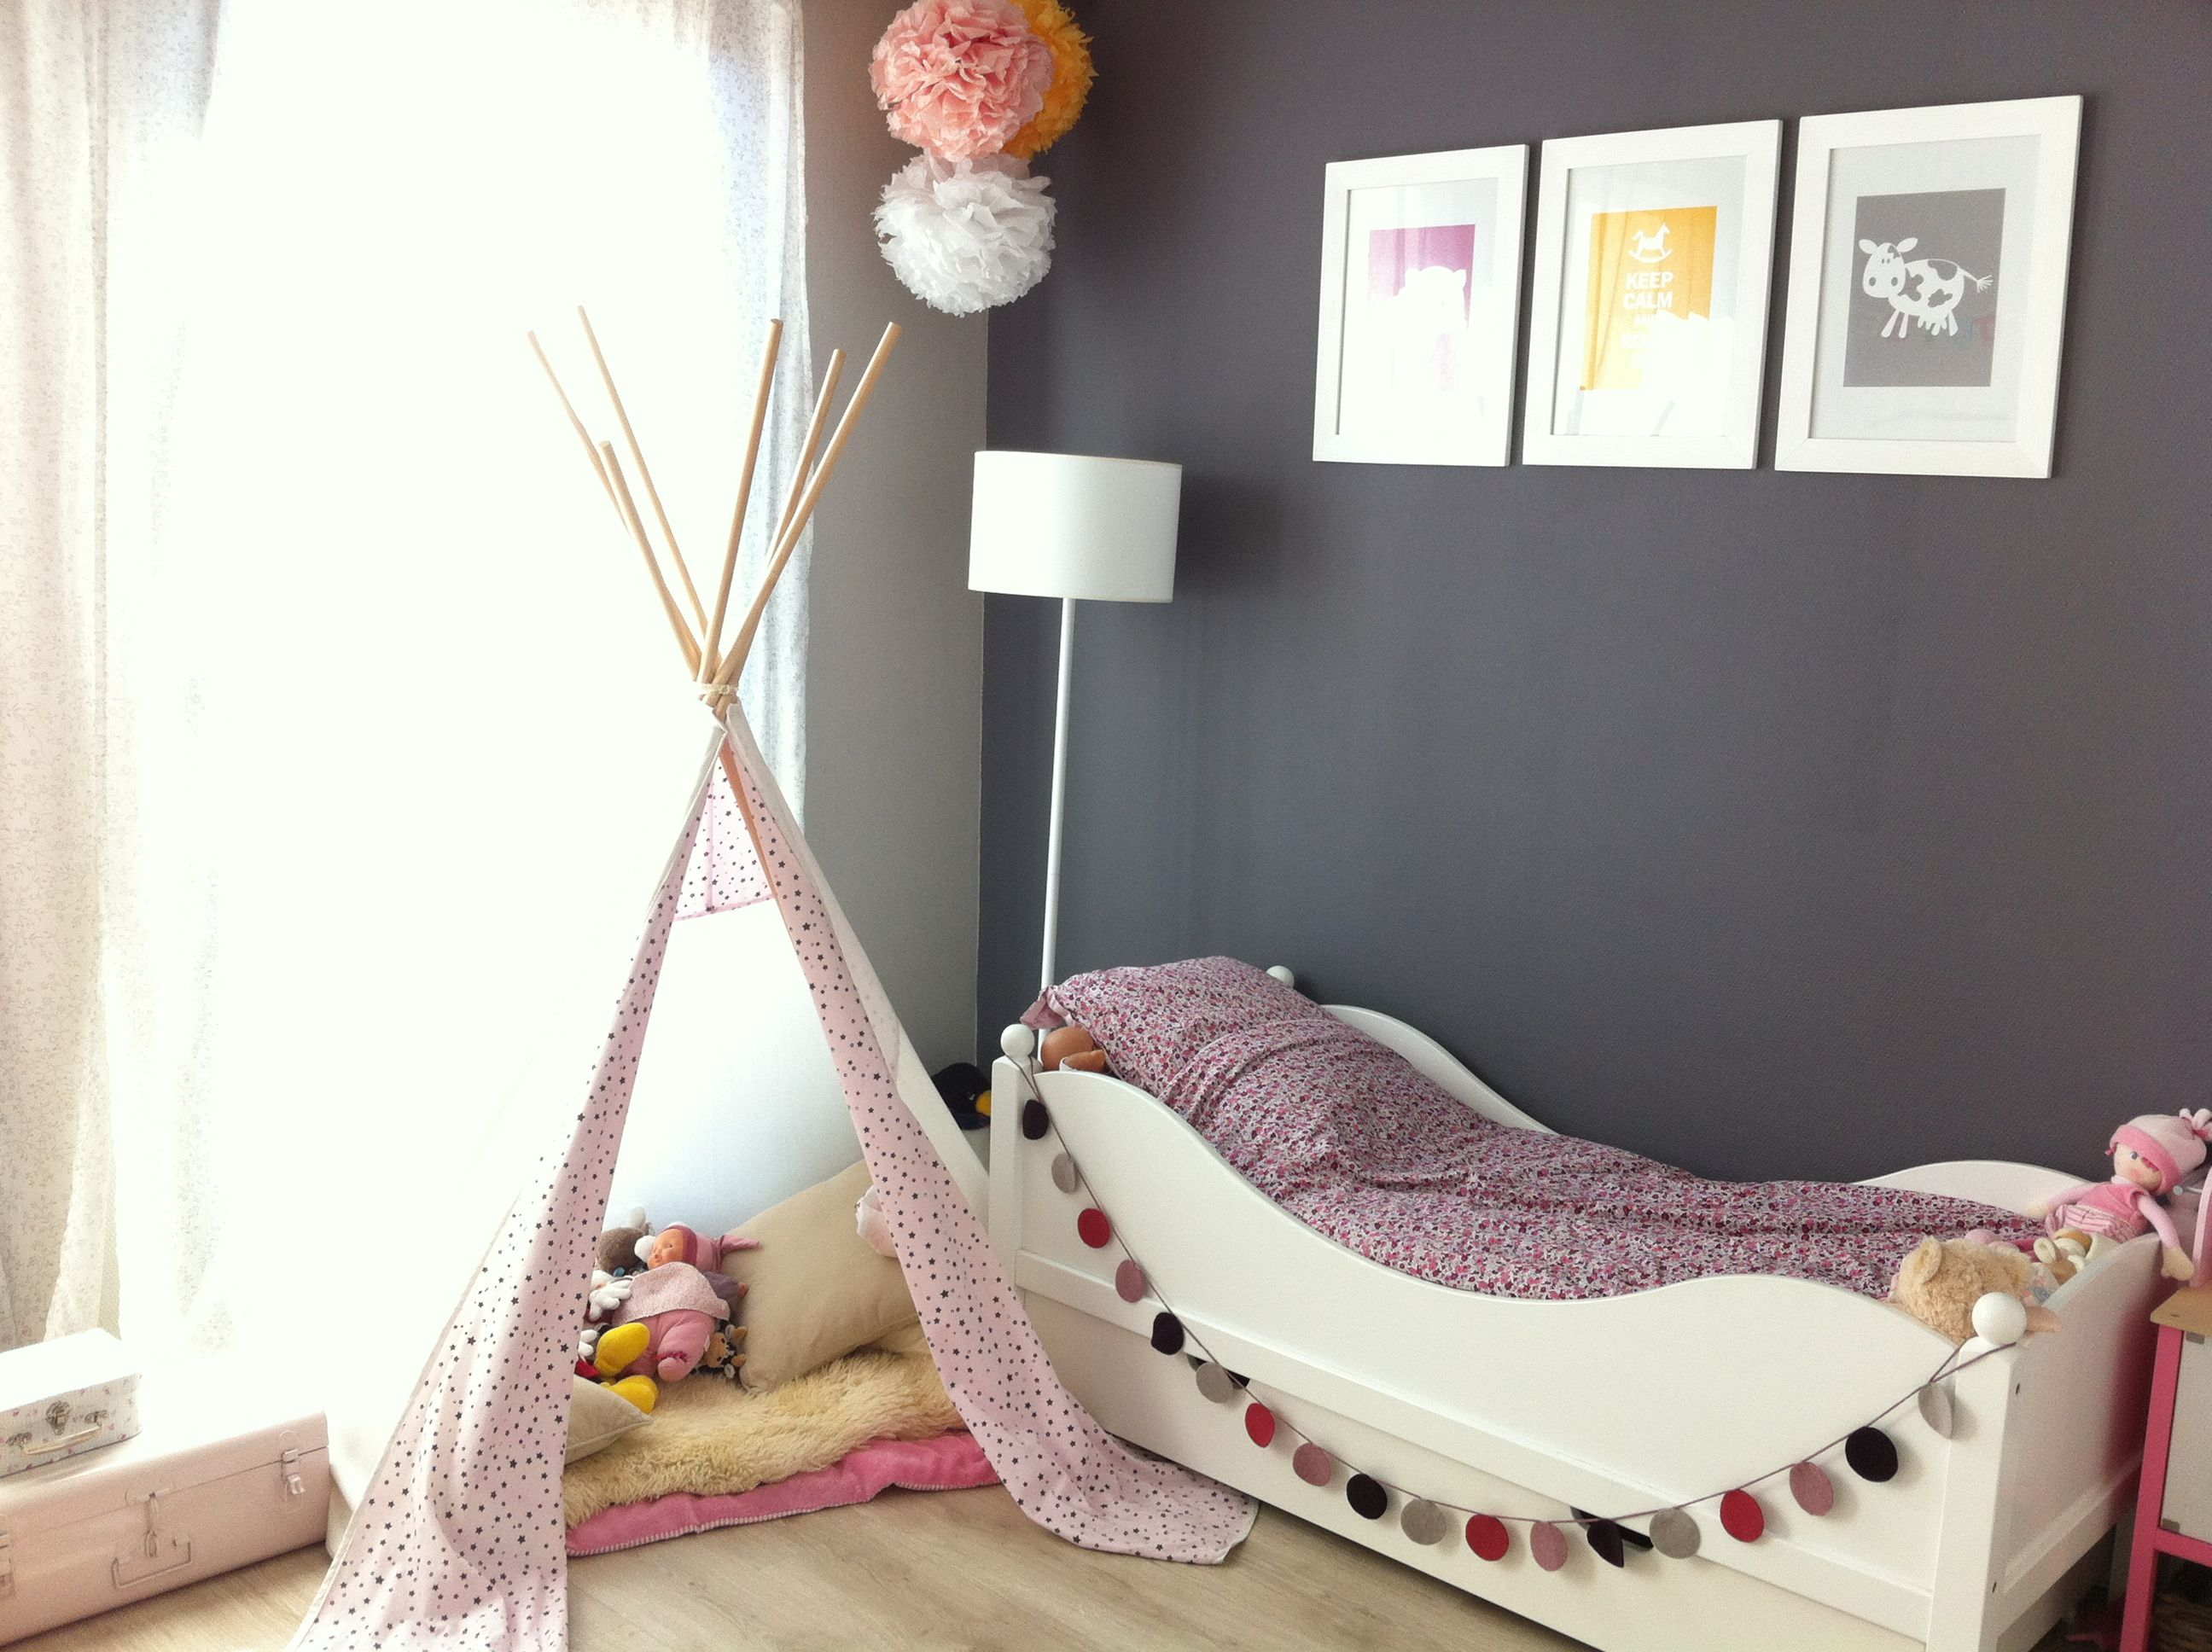 tipi tuto ikea chambre enfant fille chambre enfant pinterest kids rooms room and play spaces. Black Bedroom Furniture Sets. Home Design Ideas